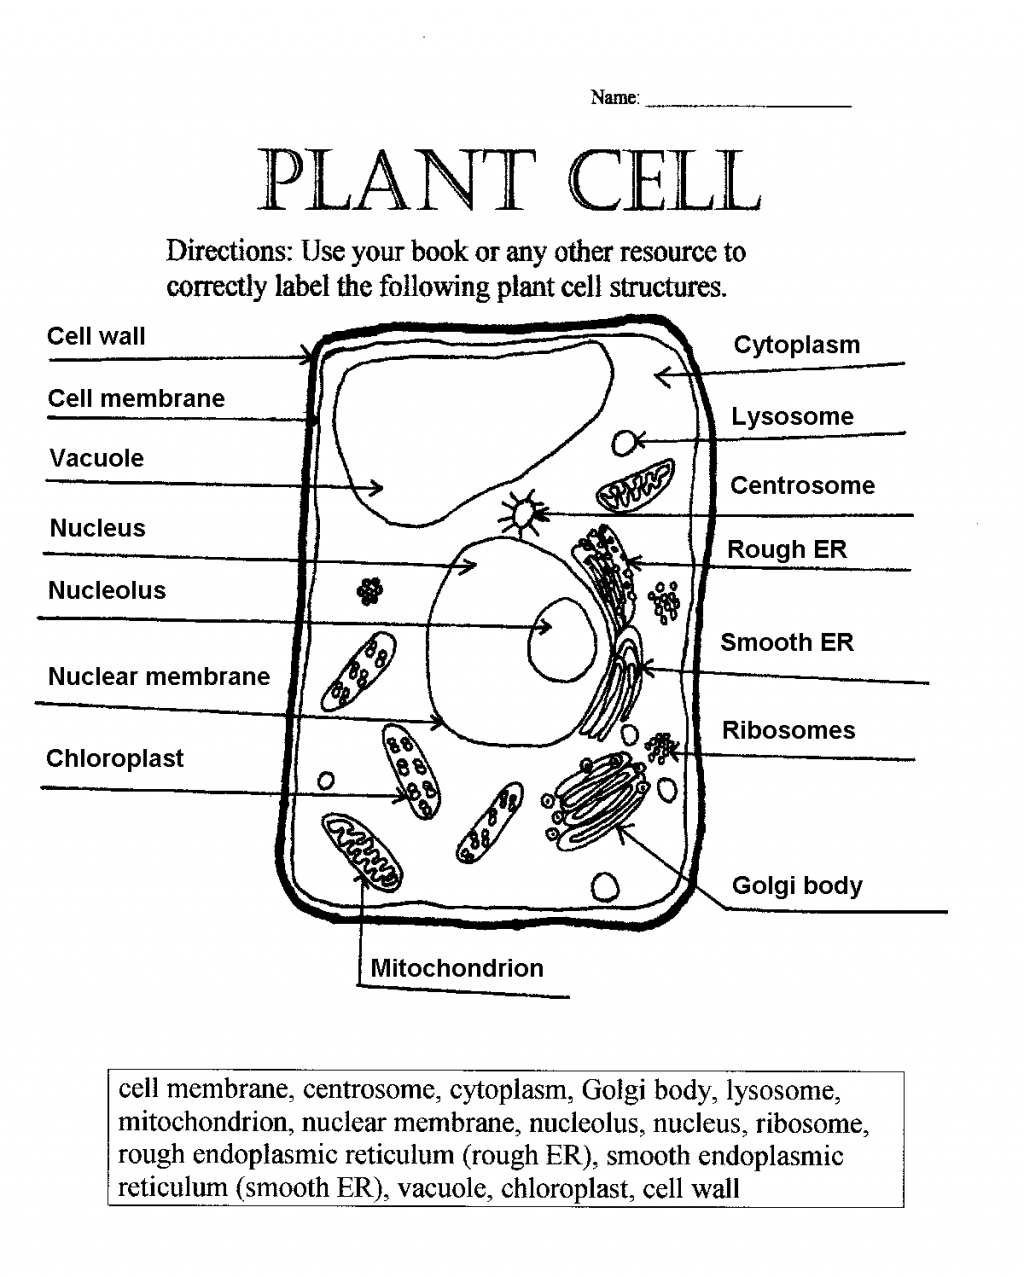 Printables Cell Biology Worksheets printables label plant cell worksheet sharpmindprojects fireyourmentor free printable worksheets animal and cells education com middle school life science cells